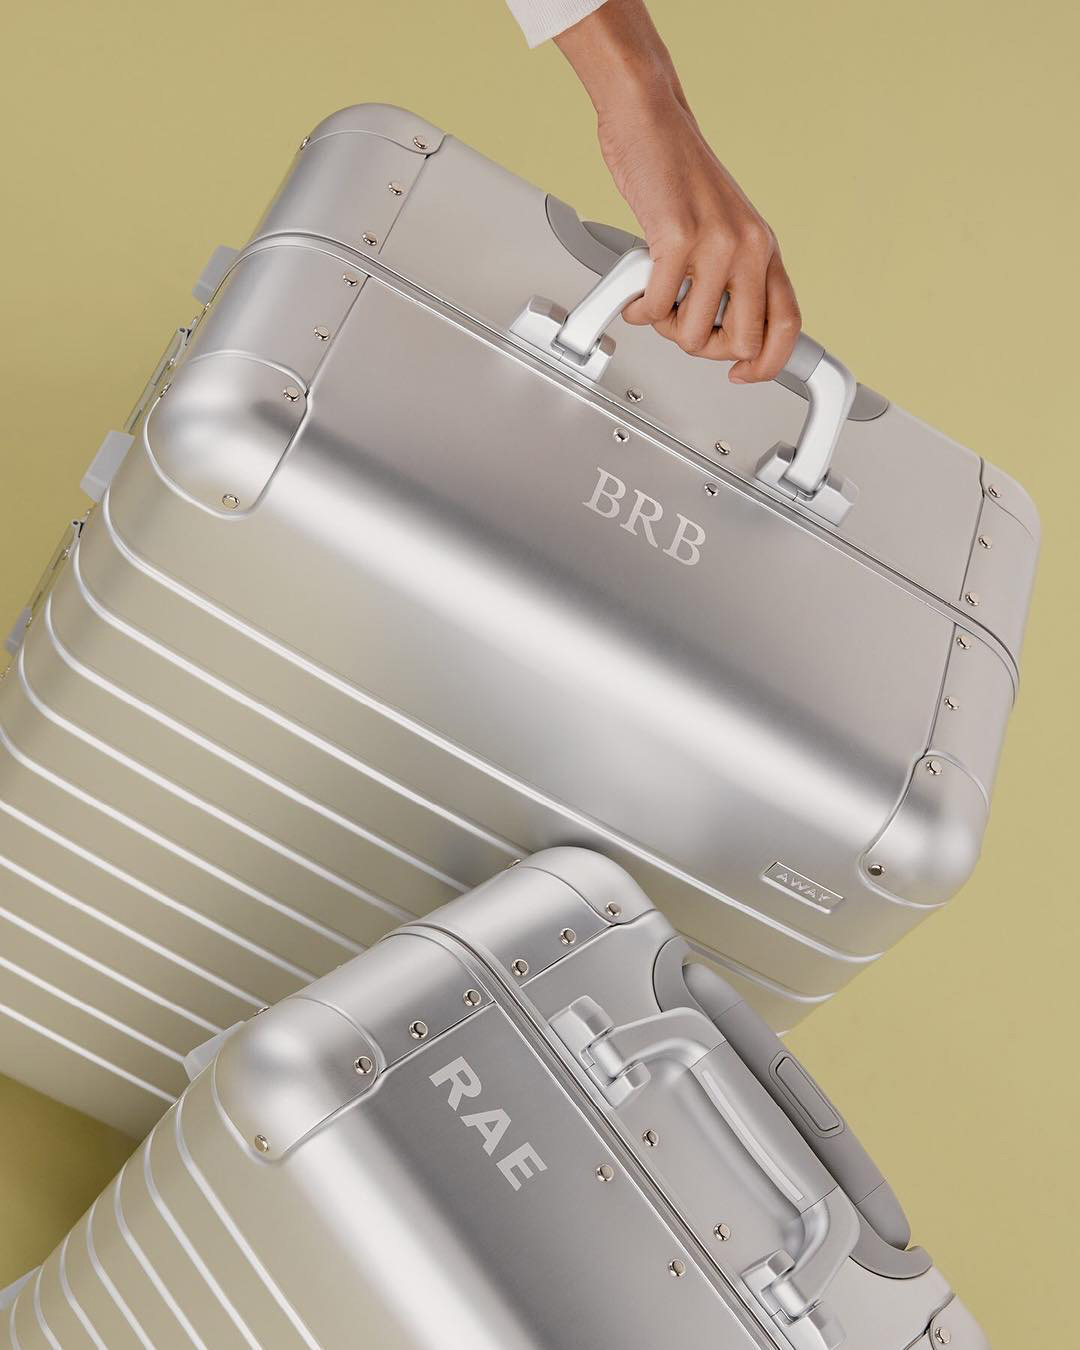 personalized gift initialed luggage